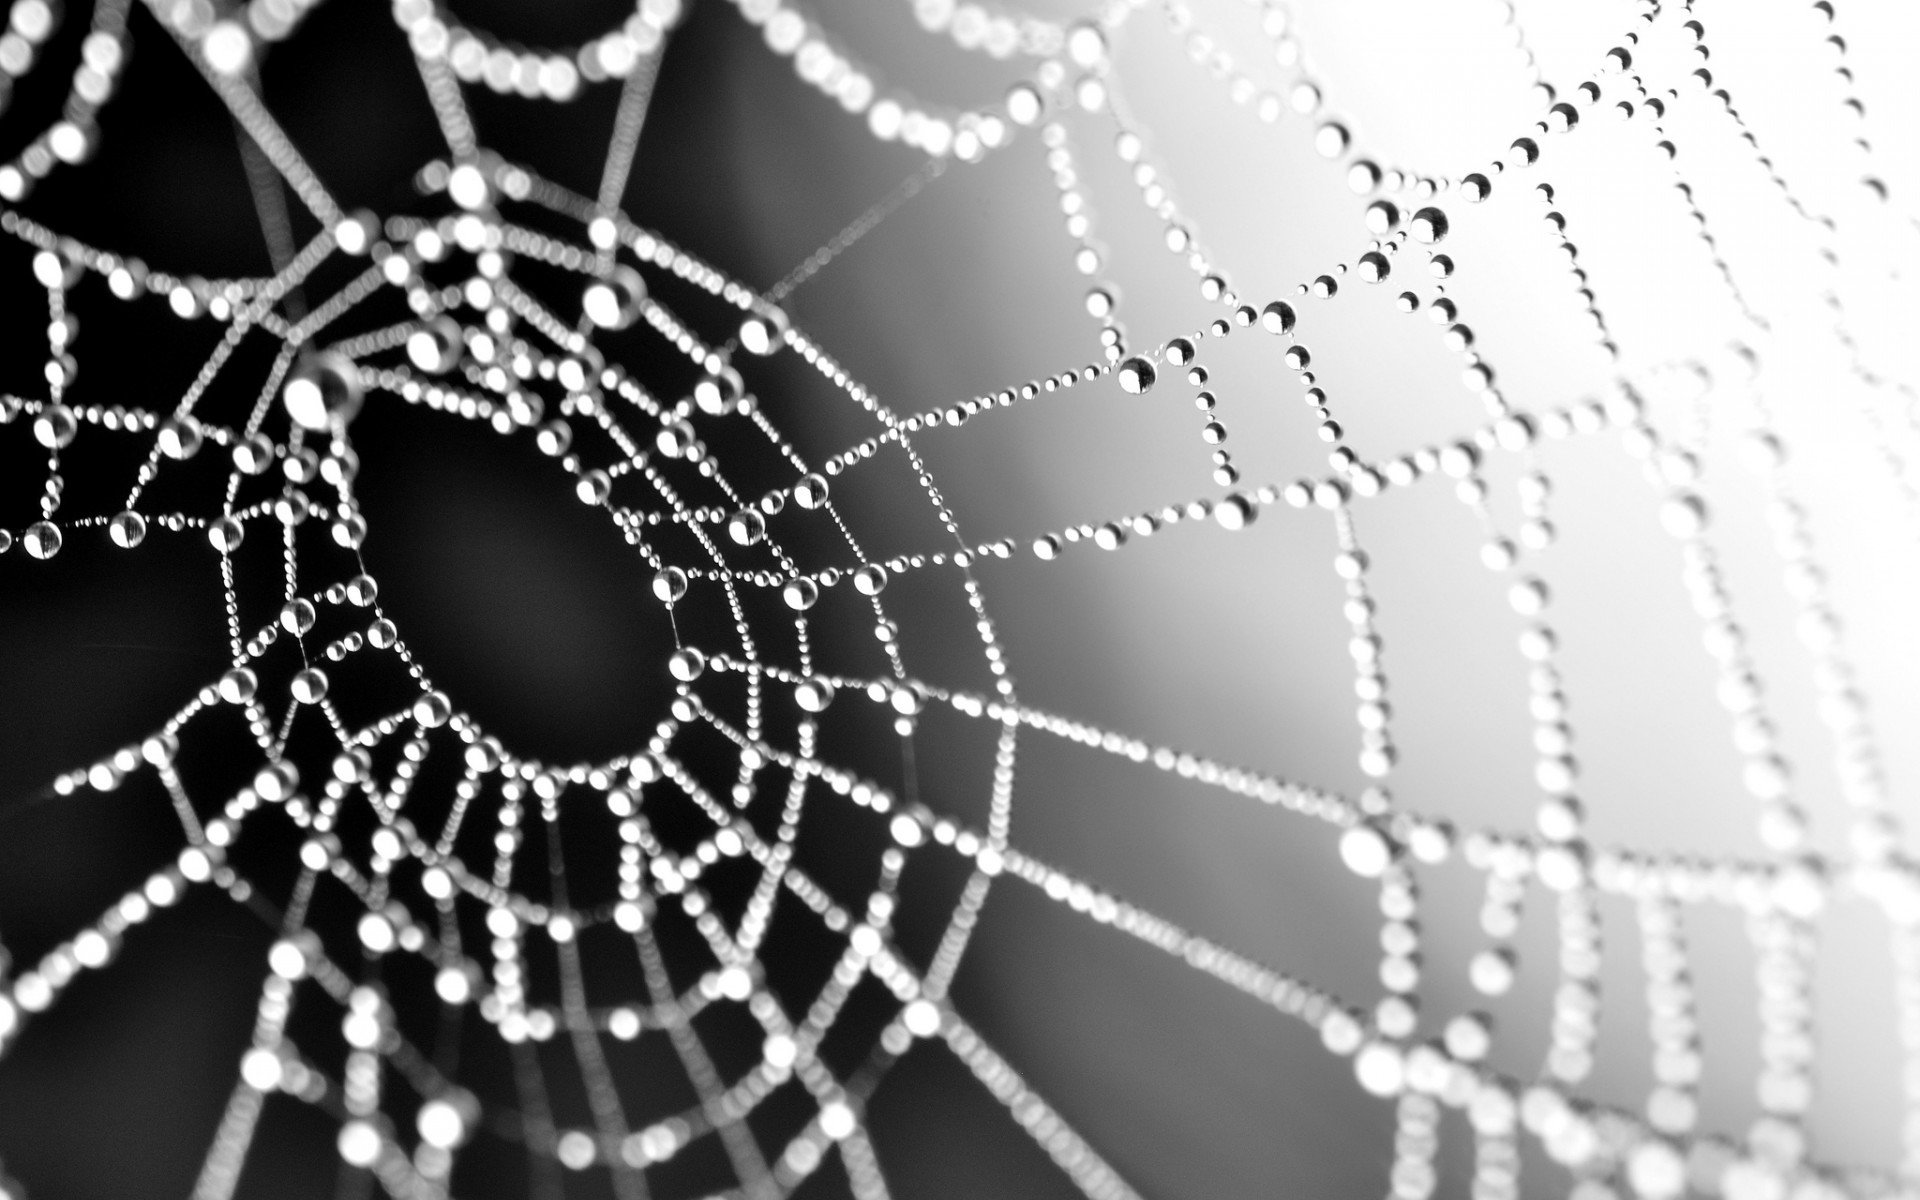 Awesome Spider Web free wallpaper ID:184745 for hd 1920x1200 desktop